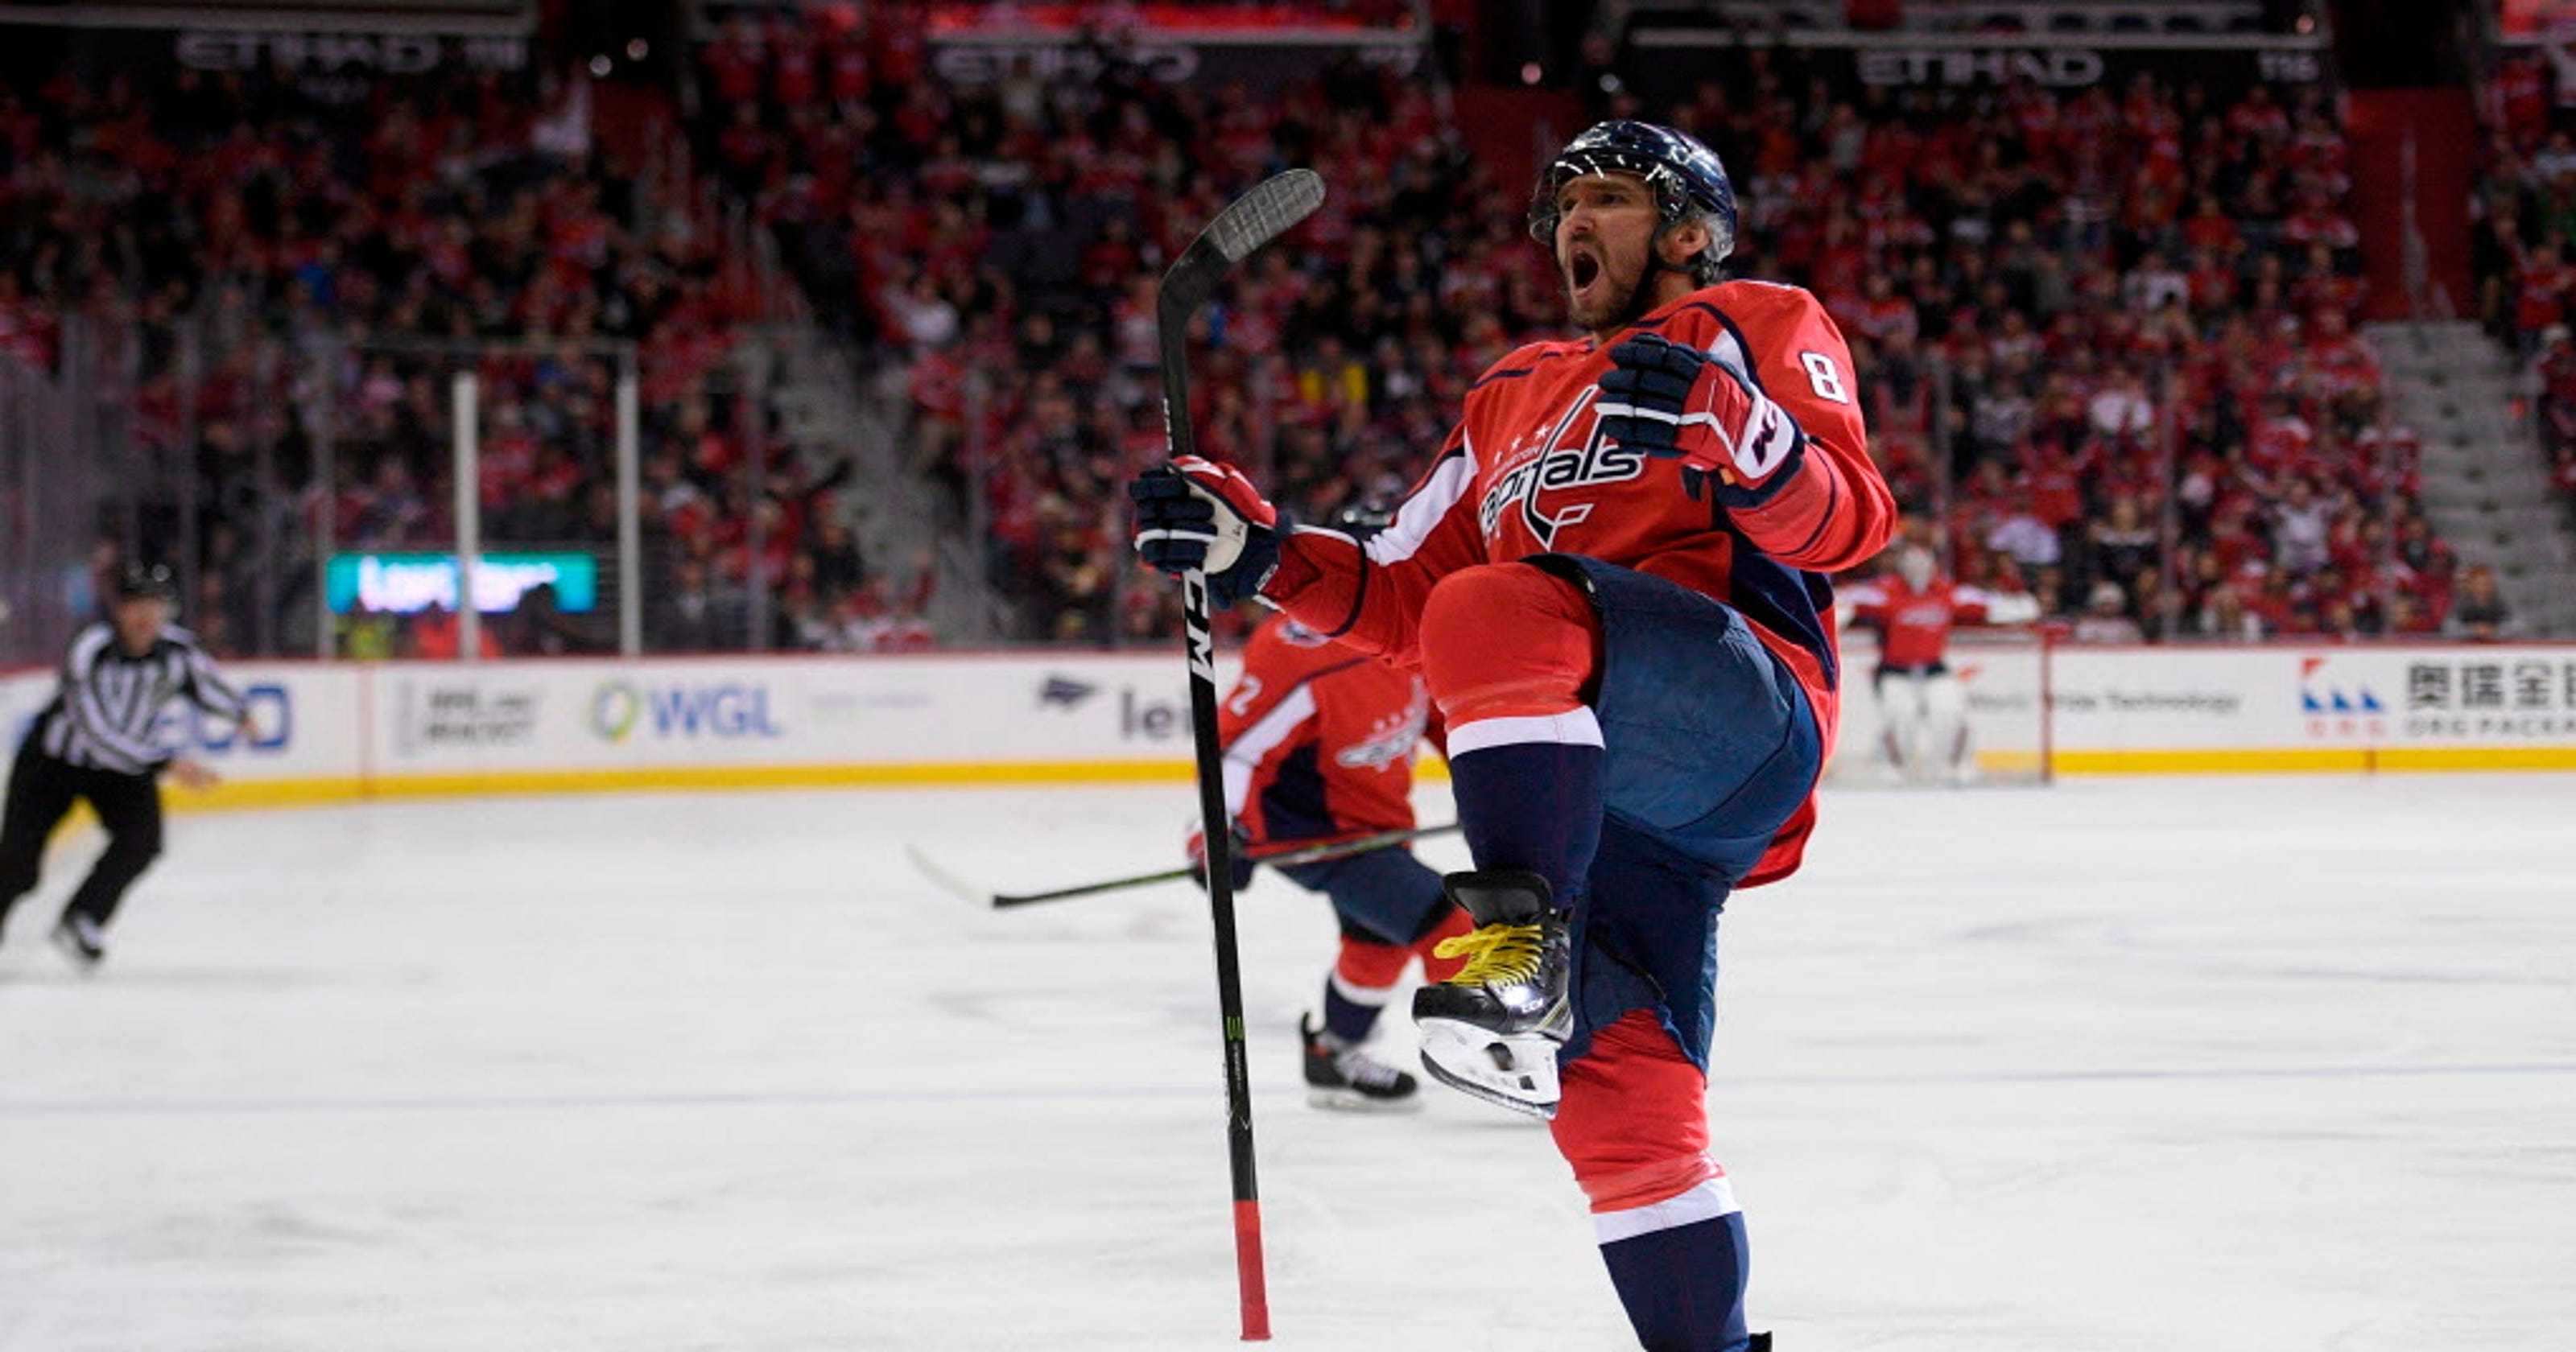 Alex Ovechkin oldest to win NHL goal-scoring race since 1975 d8b83ed63